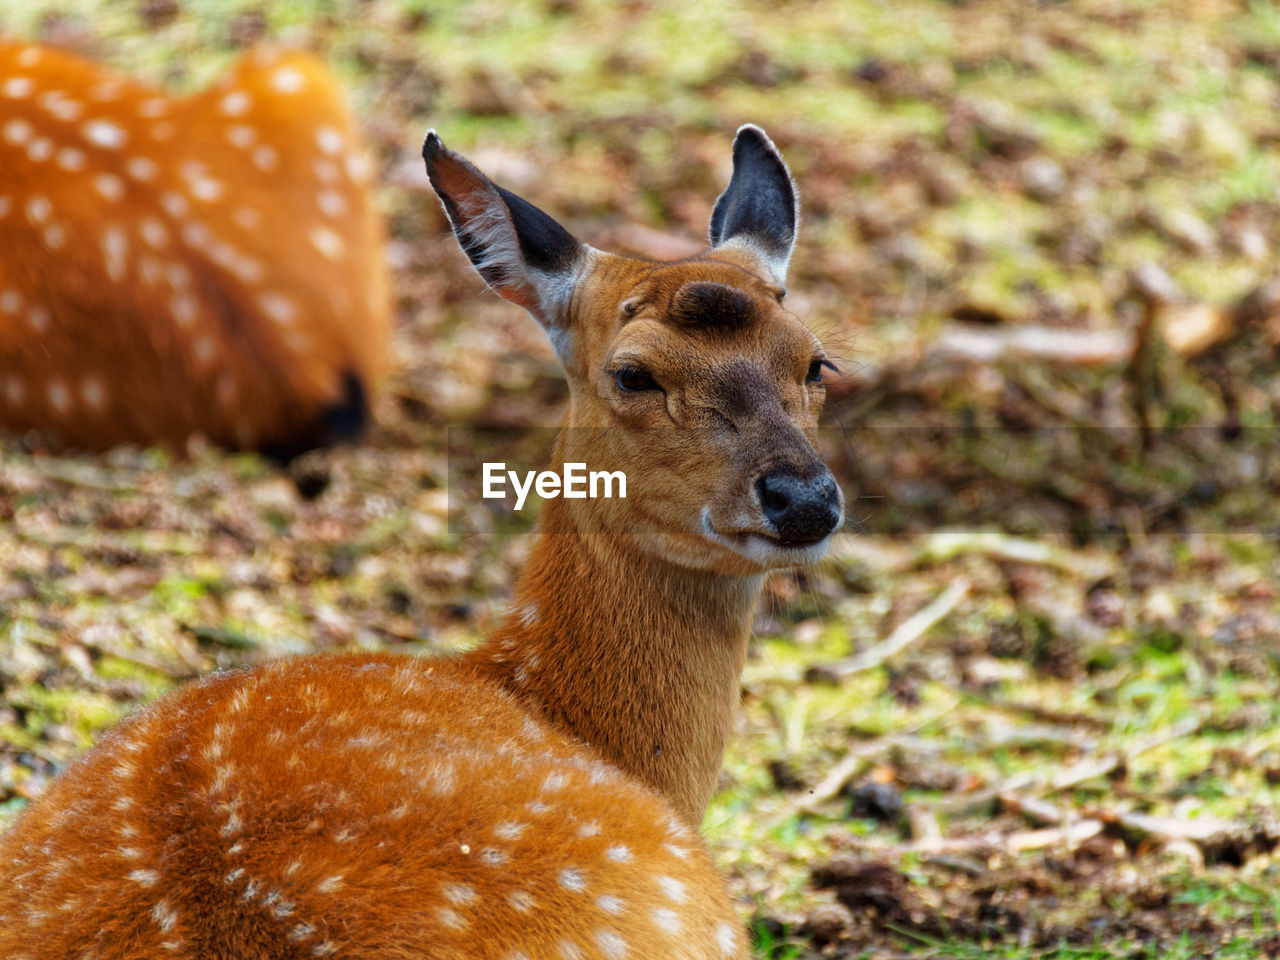 animal themes, animal, animal wildlife, animals in the wild, mammal, land, field, one animal, vertebrate, brown, focus on foreground, no people, deer, nature, portrait, day, herbivorous, fawn, close-up, outdoors